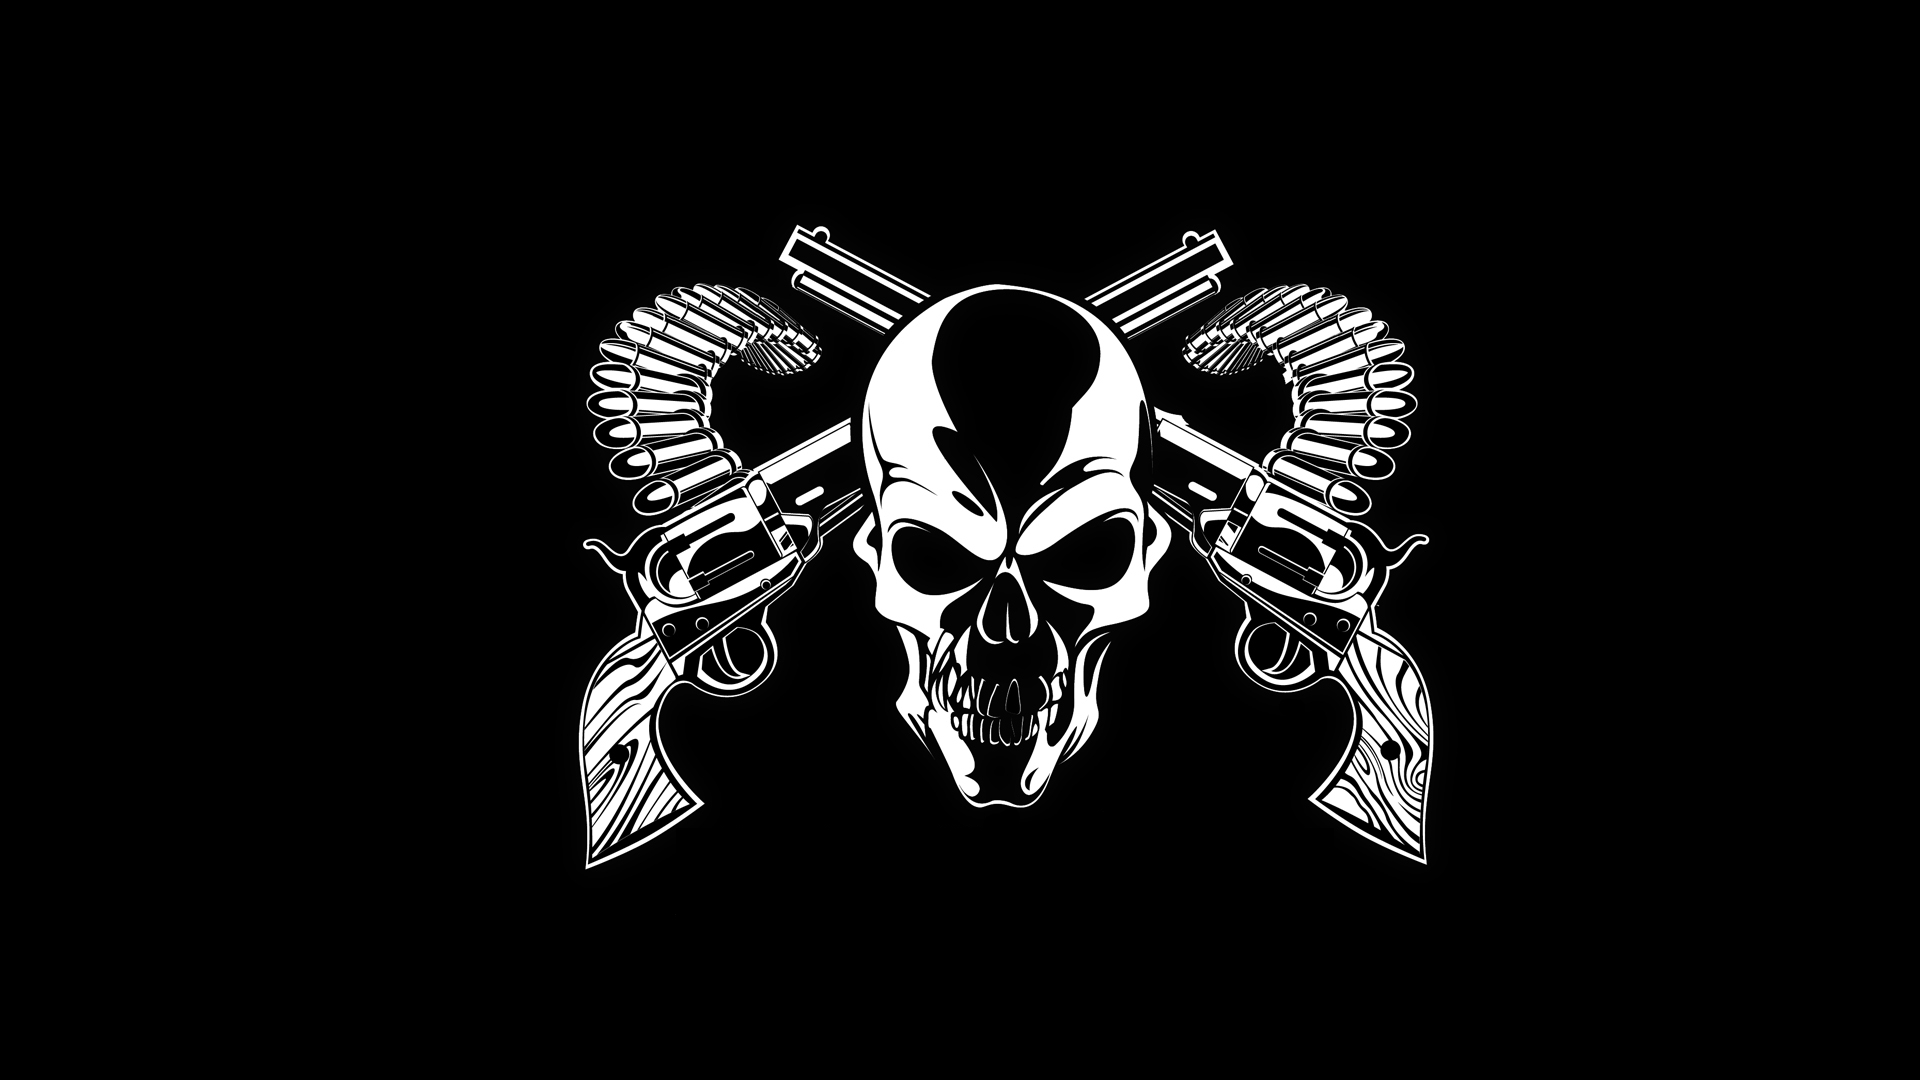 dark skull Wallpaper Backgrounds